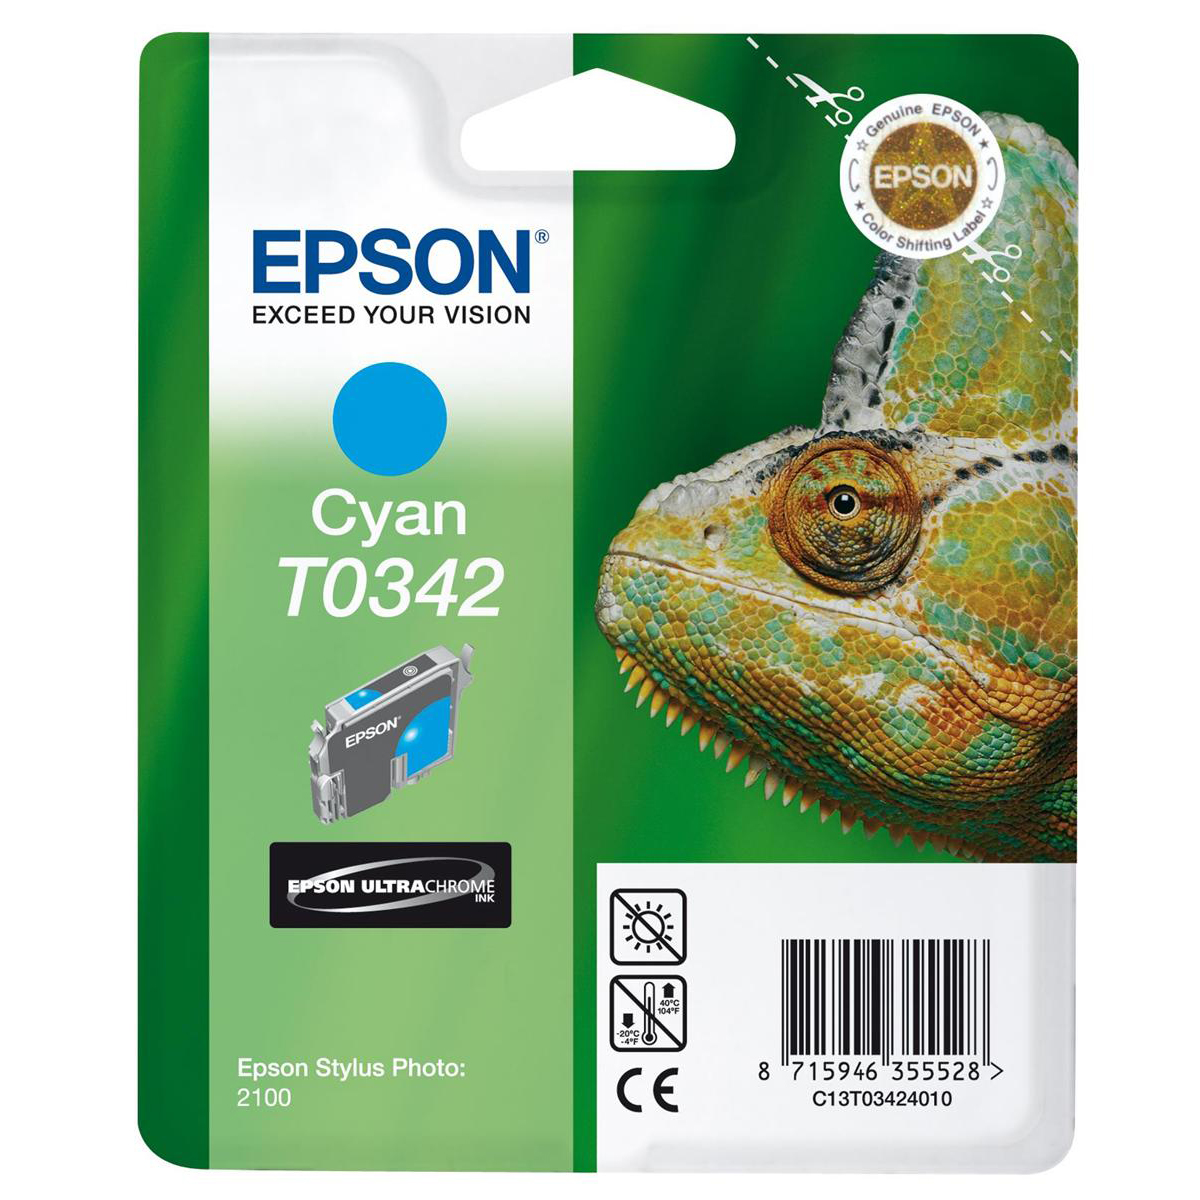 Epson T0342 Inkjet Cart Chameleon Page Life 440pp 17ml Cyan Ref C13T03424010 3to5 Day Leadtime